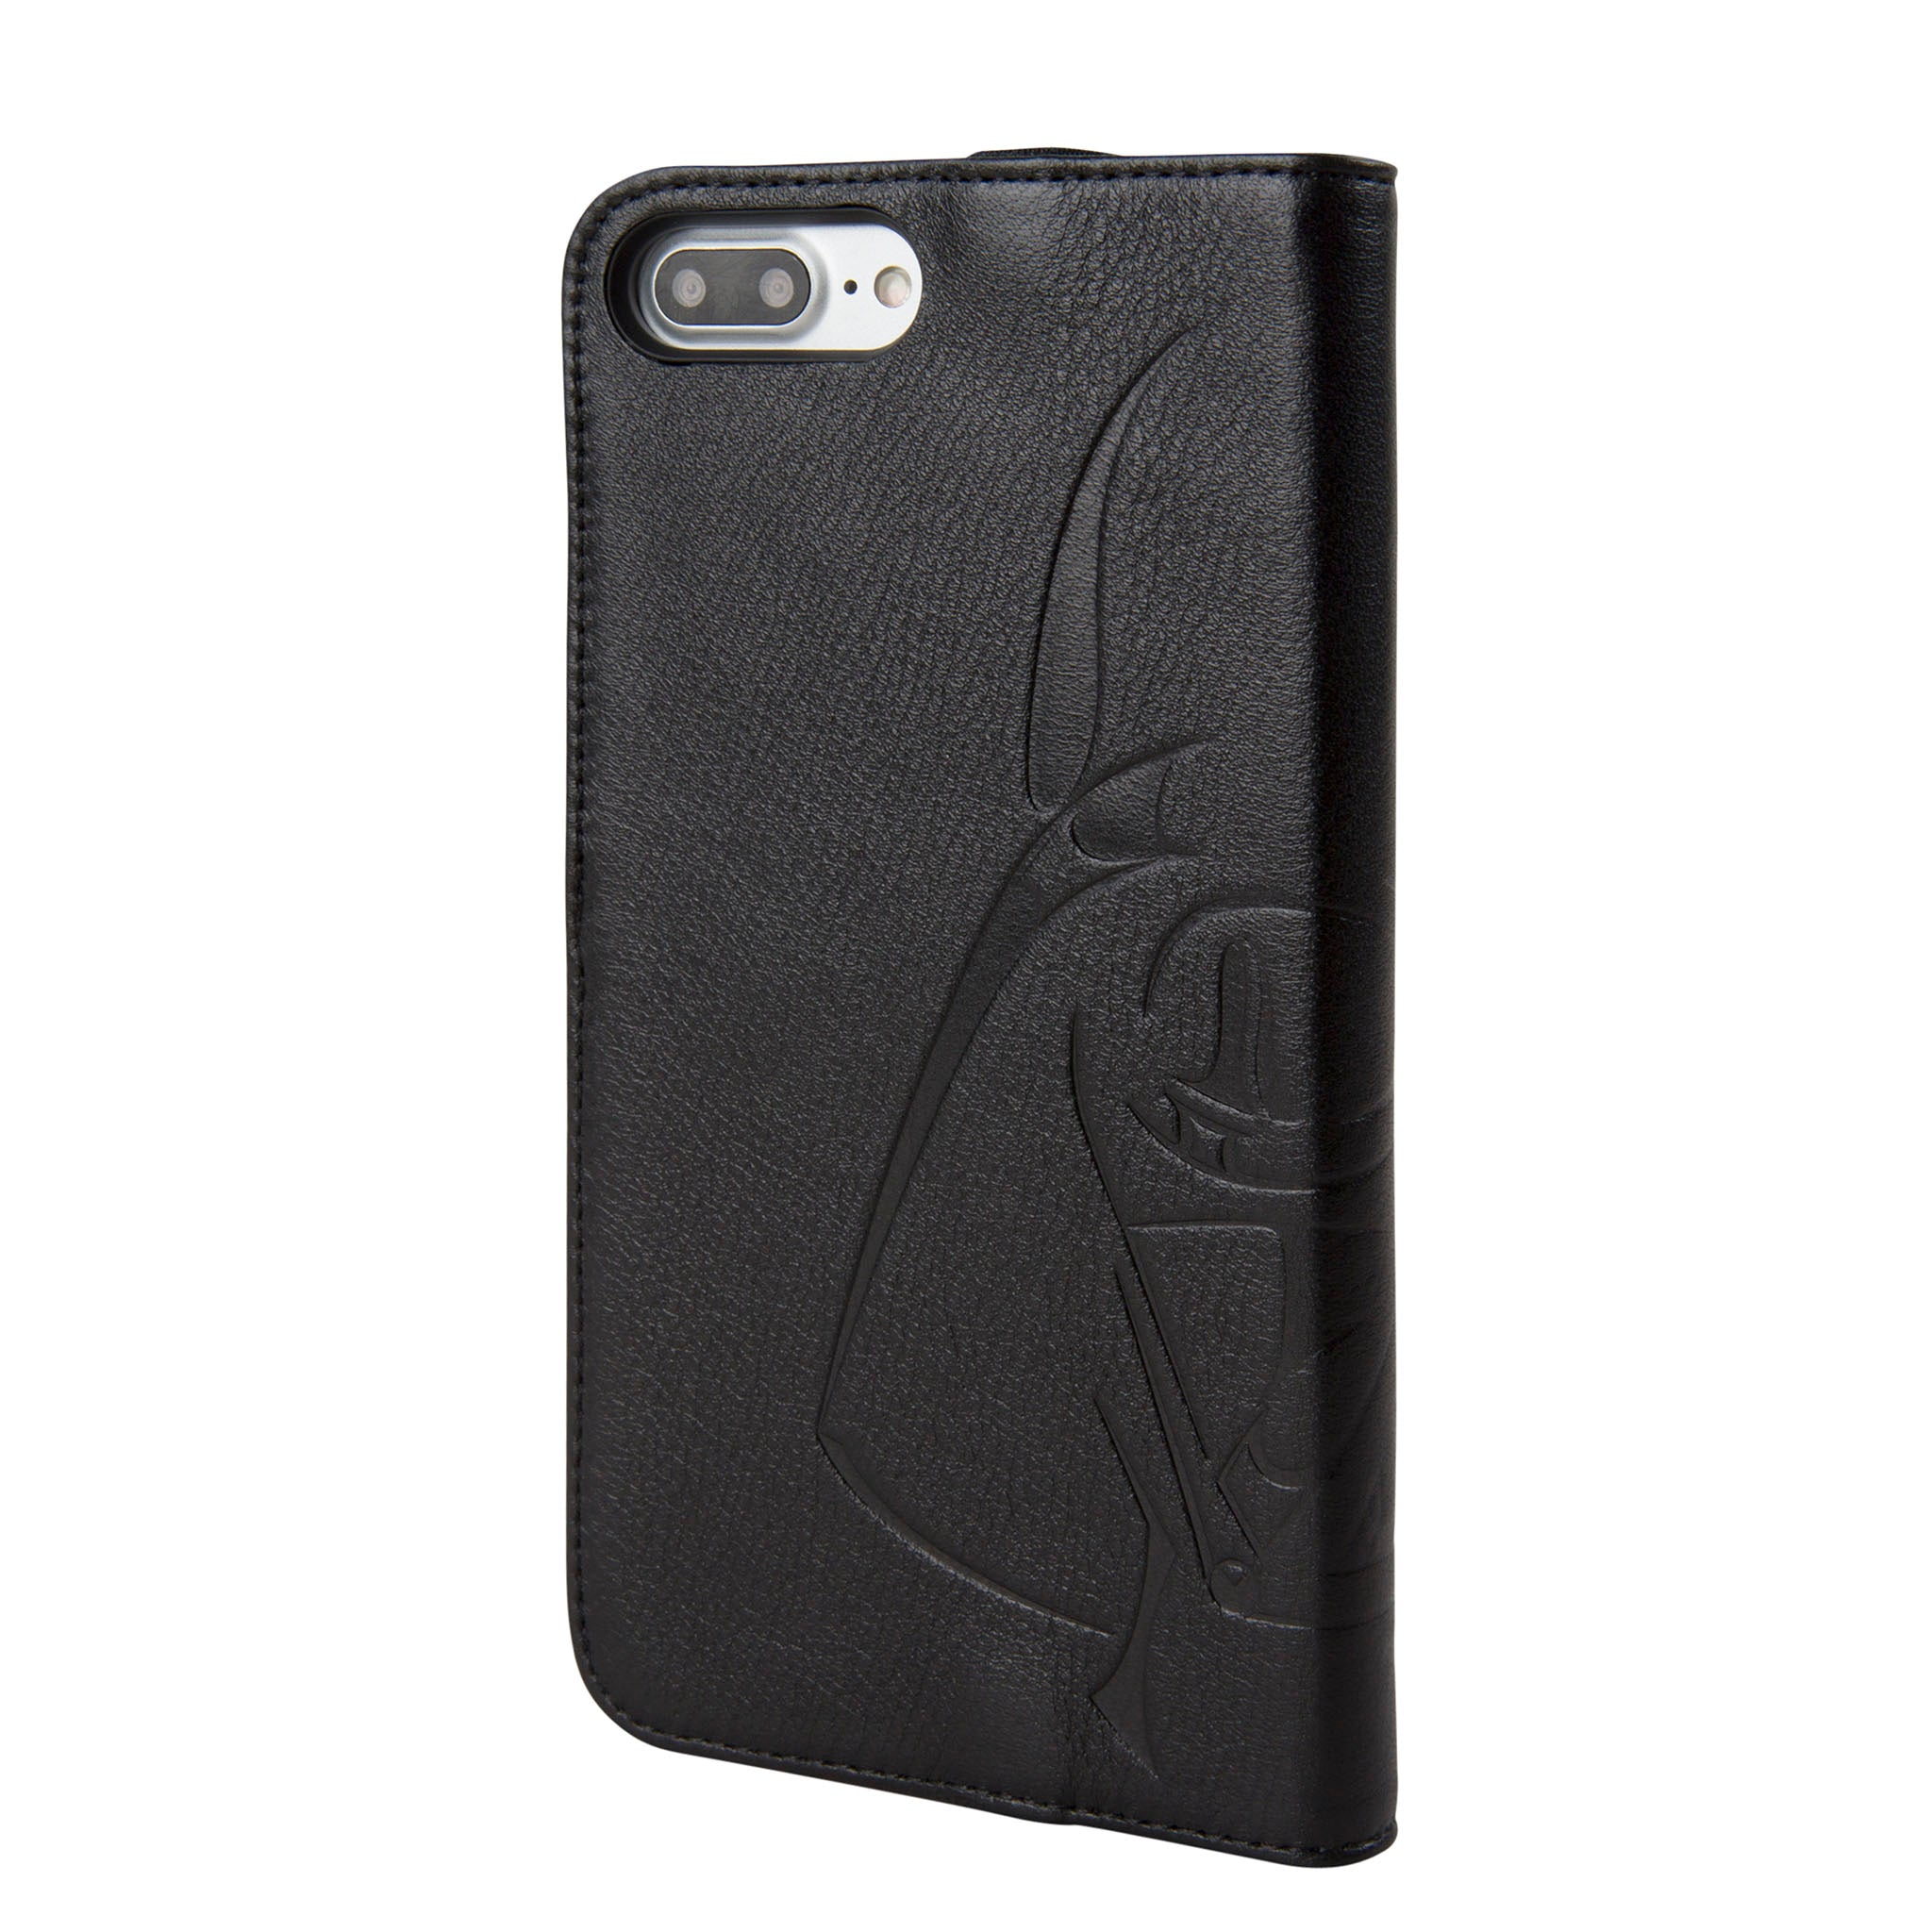 reputable site 63871 a5fb7 Star Wars Darth Vader Wallet Case for iPhone 8 Plus